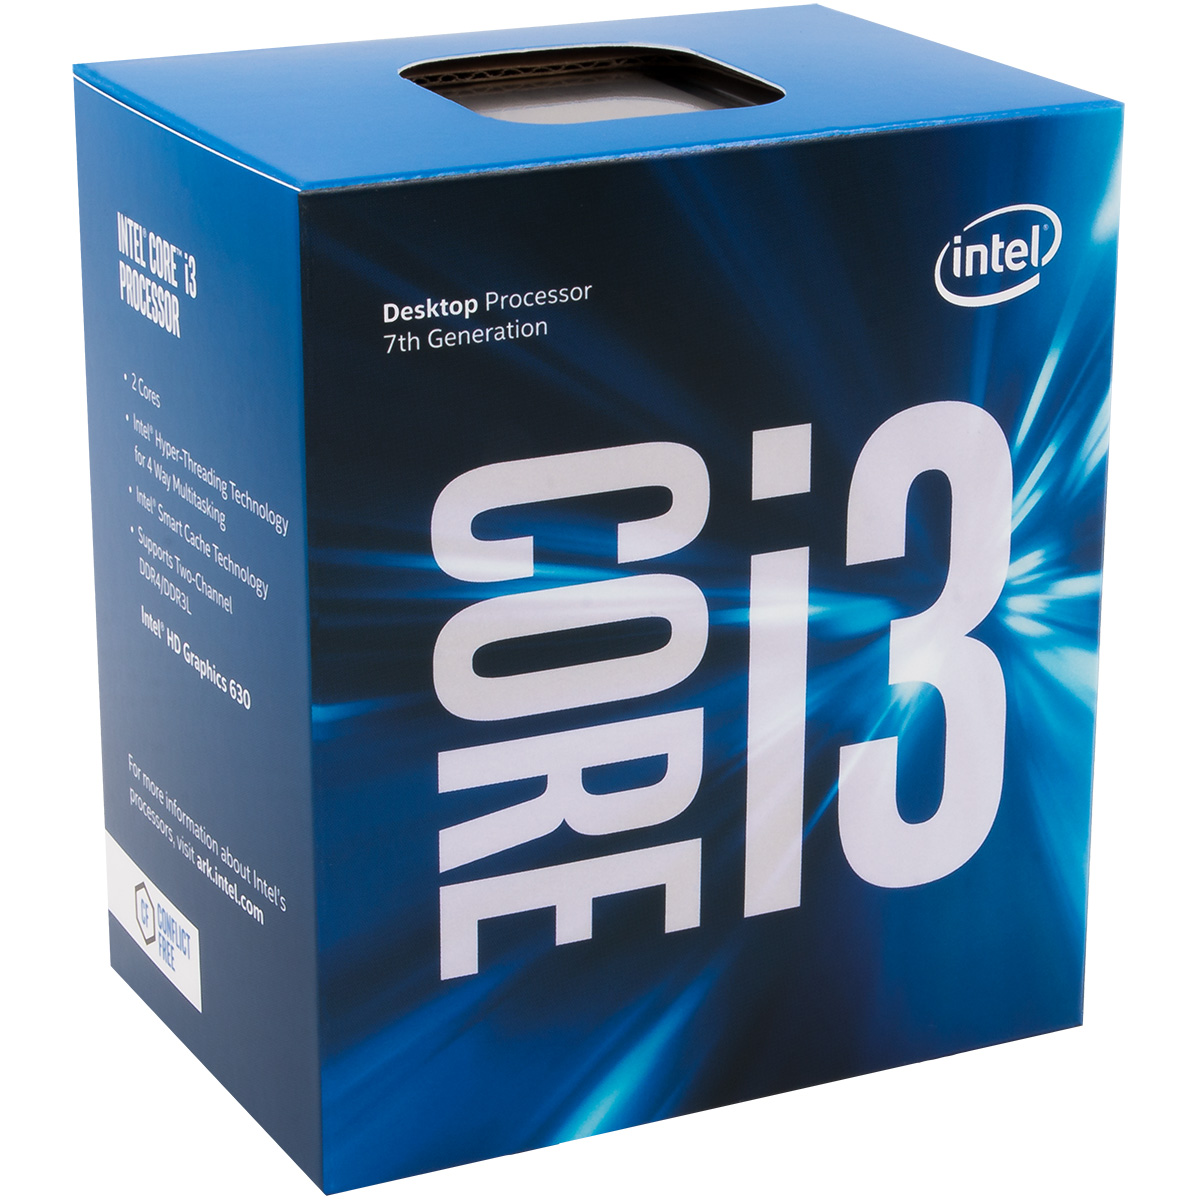 Processeur Intel Core i3 7100 Dual Core (3.90 GHz) Socket 1151 - Cache 3 Mo (Box), informatique ile de la réunion